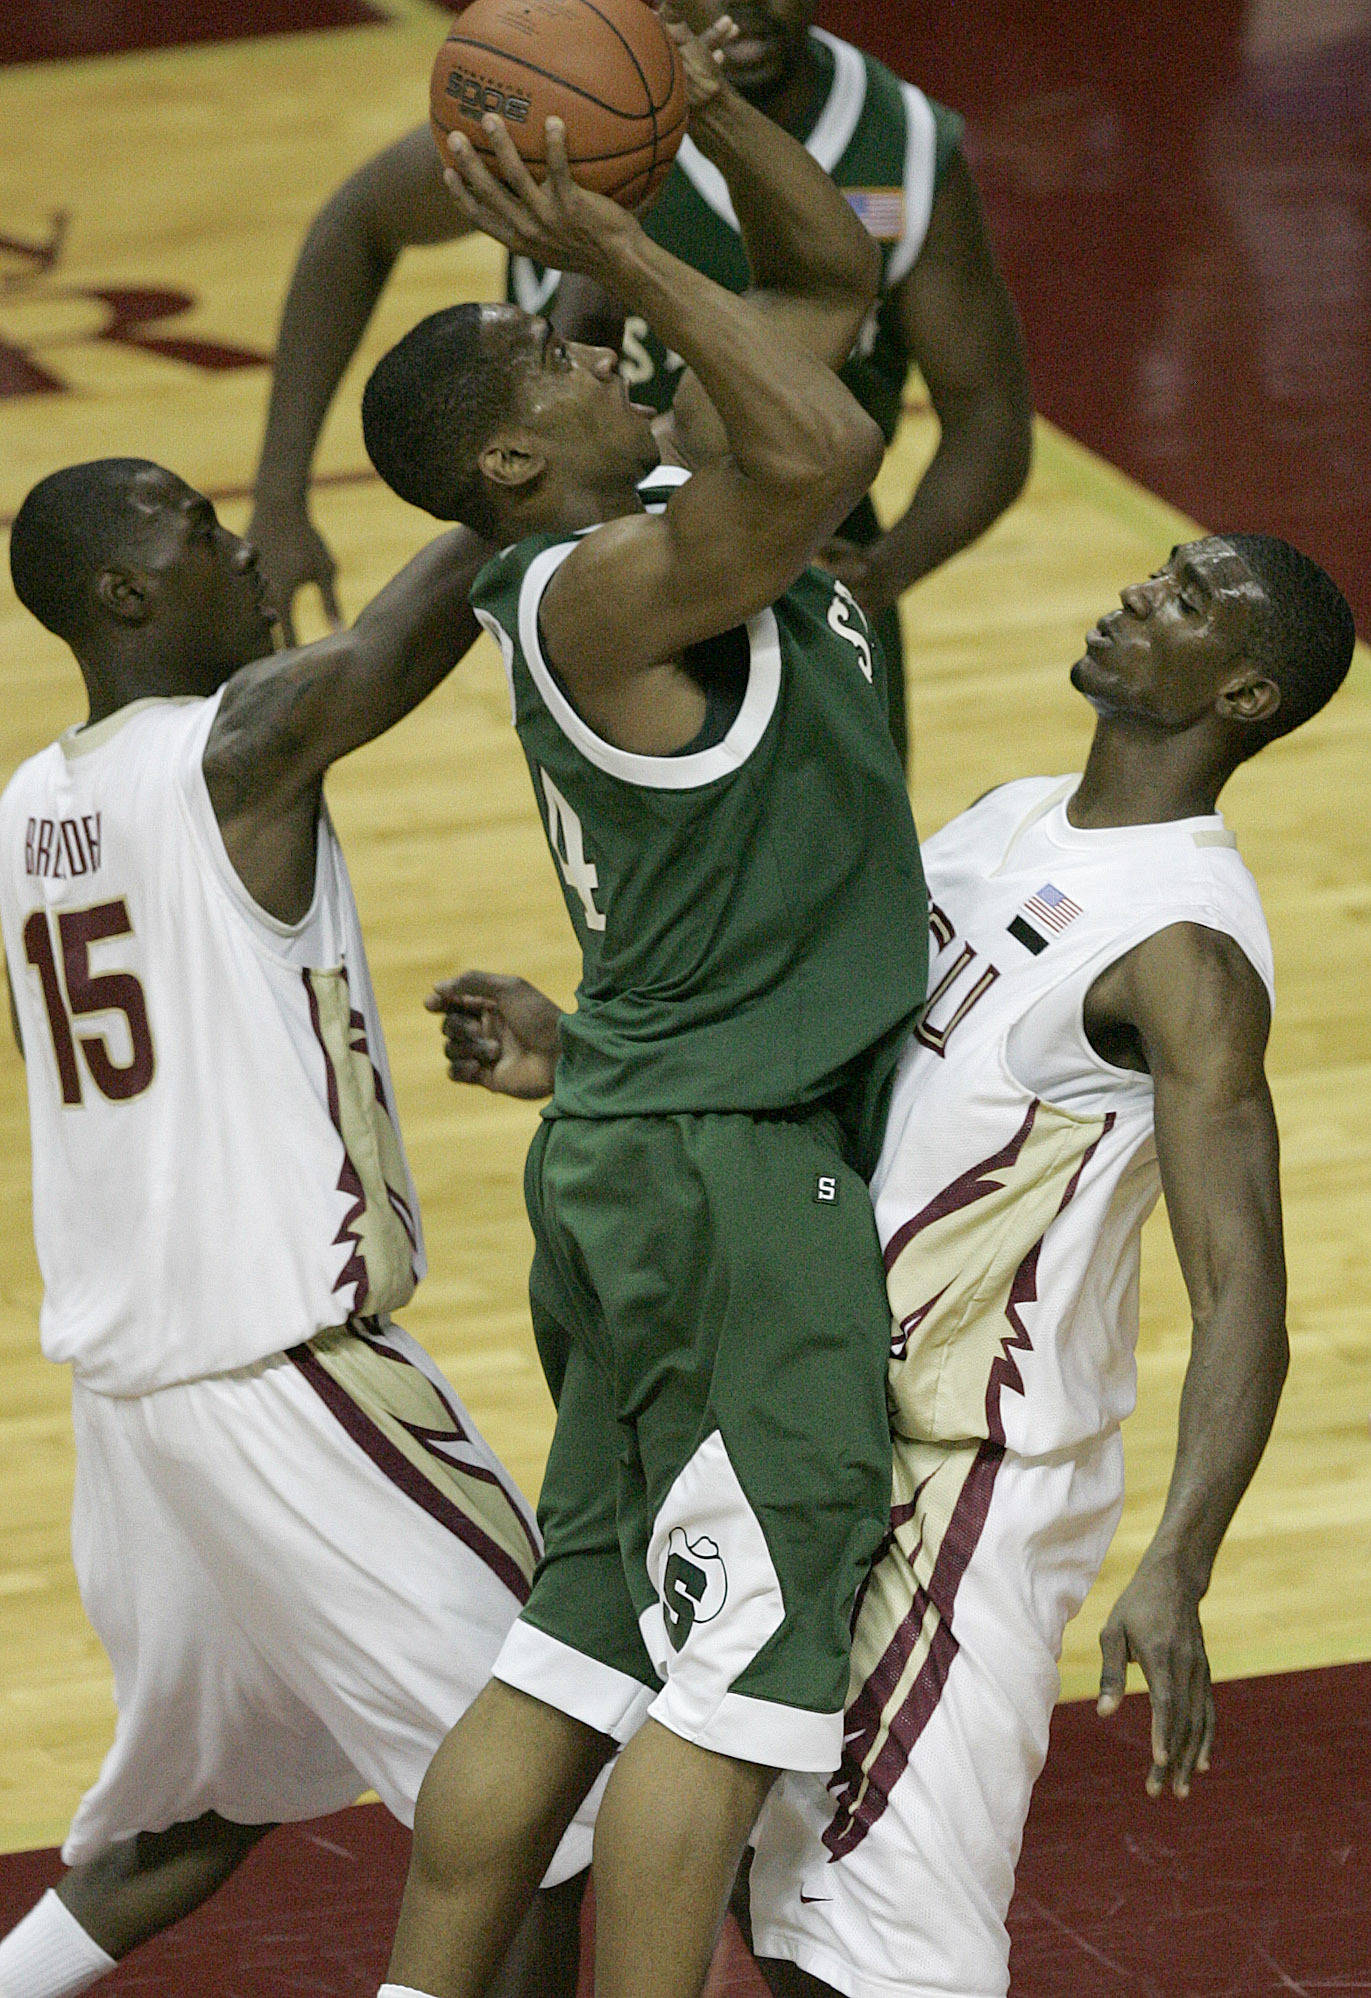 Florida State's Uche Echefu tries to draw a charge from Stetson's Garfield Blair in the first half of a college basketball game on Friday Nov. 30, 2007 in Tallahassee, Fla. (AP Photo/Steve Cannon)